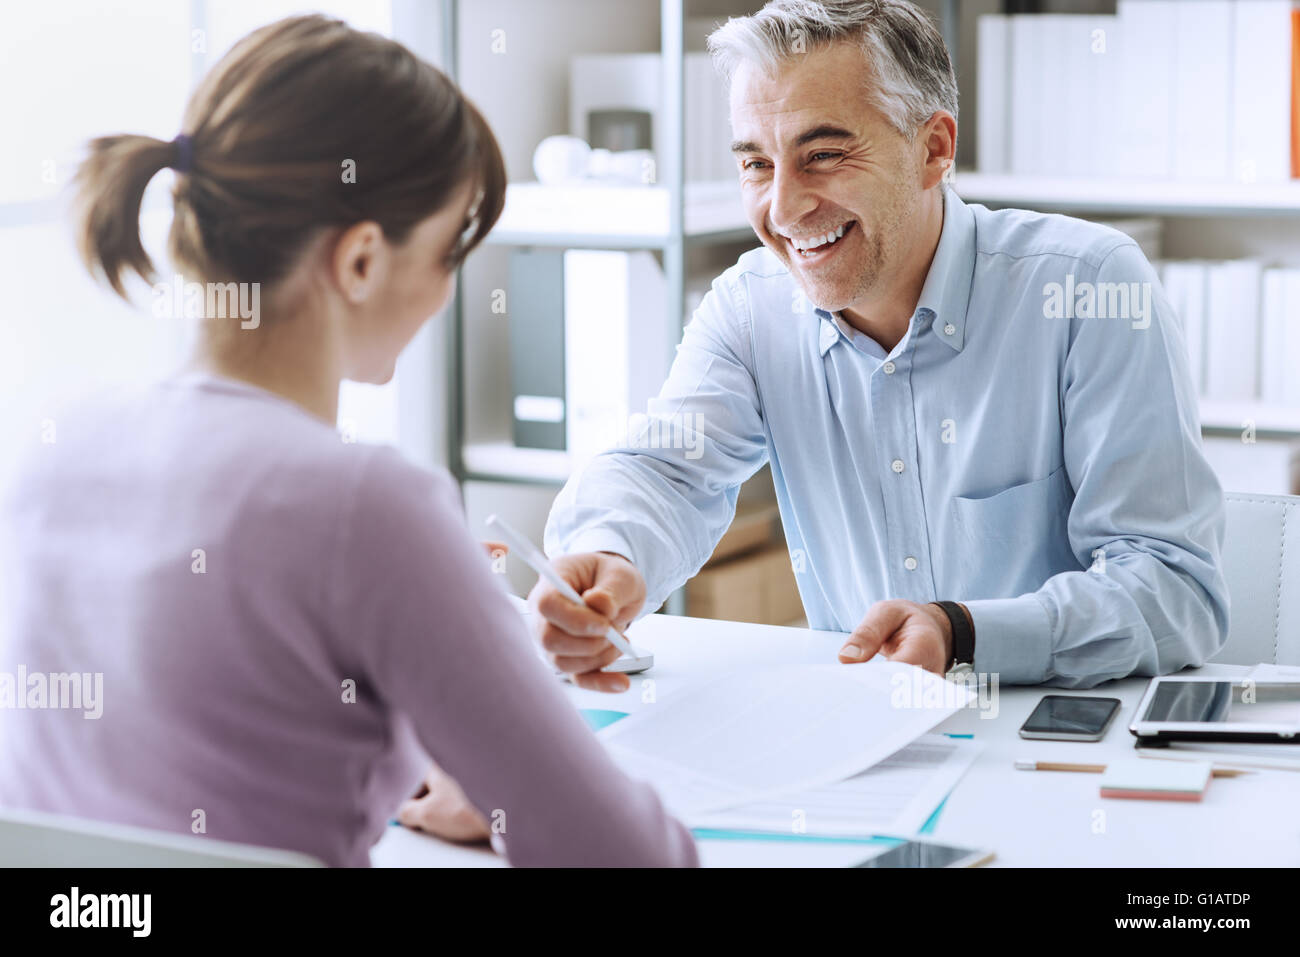 Young woman having a business meeting and signing a contract, recruitment and agreement concept - Stock Image